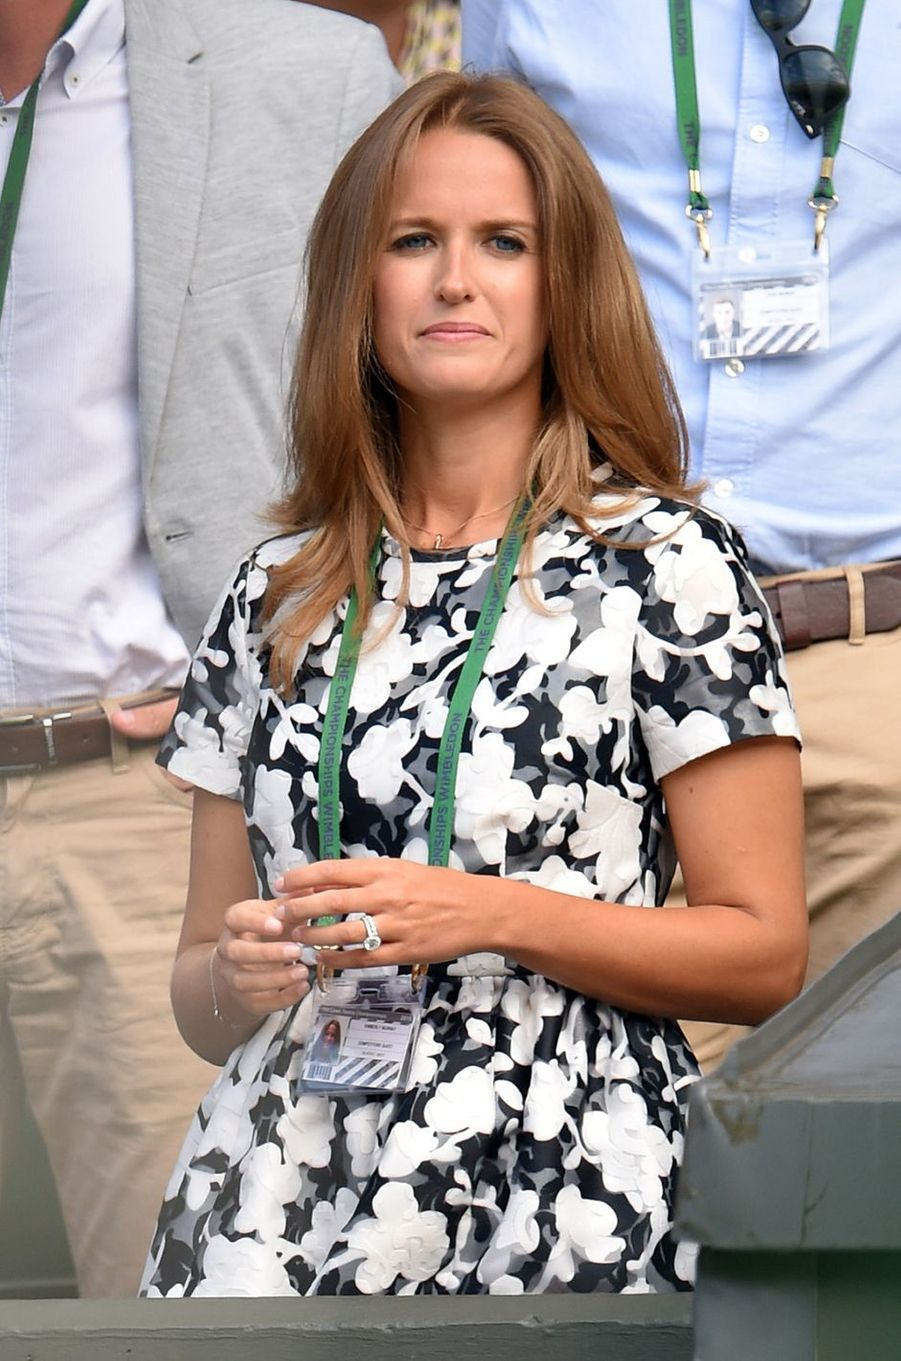 Kim Sears, compagne d'Andy Murray.